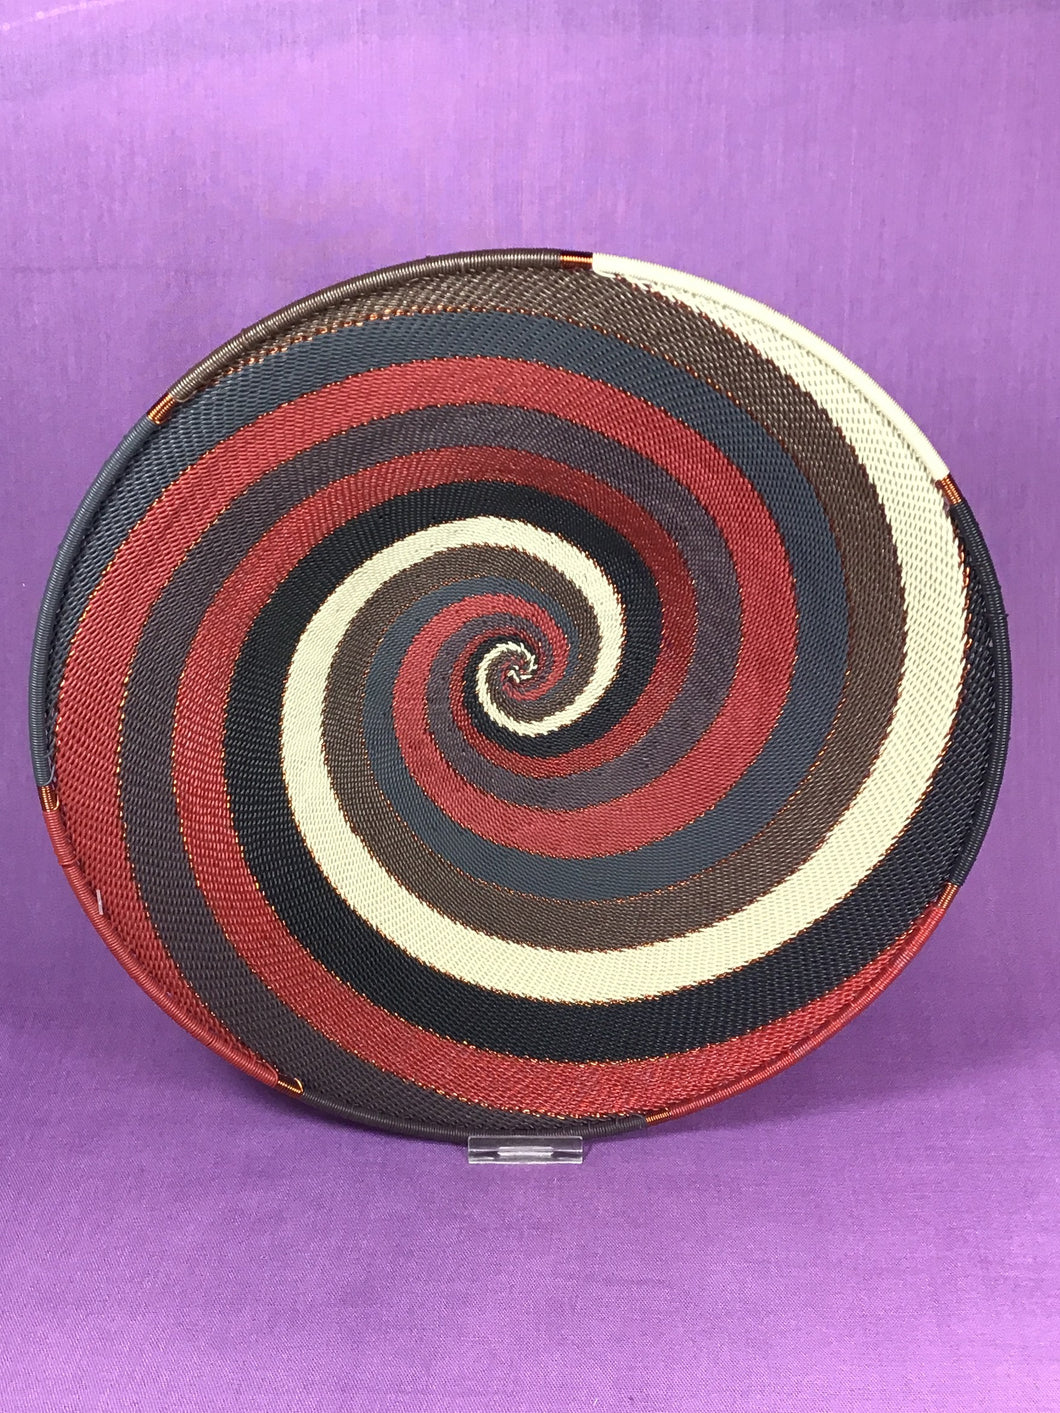 Telephone Wire Medium Platter - 1 color pattern